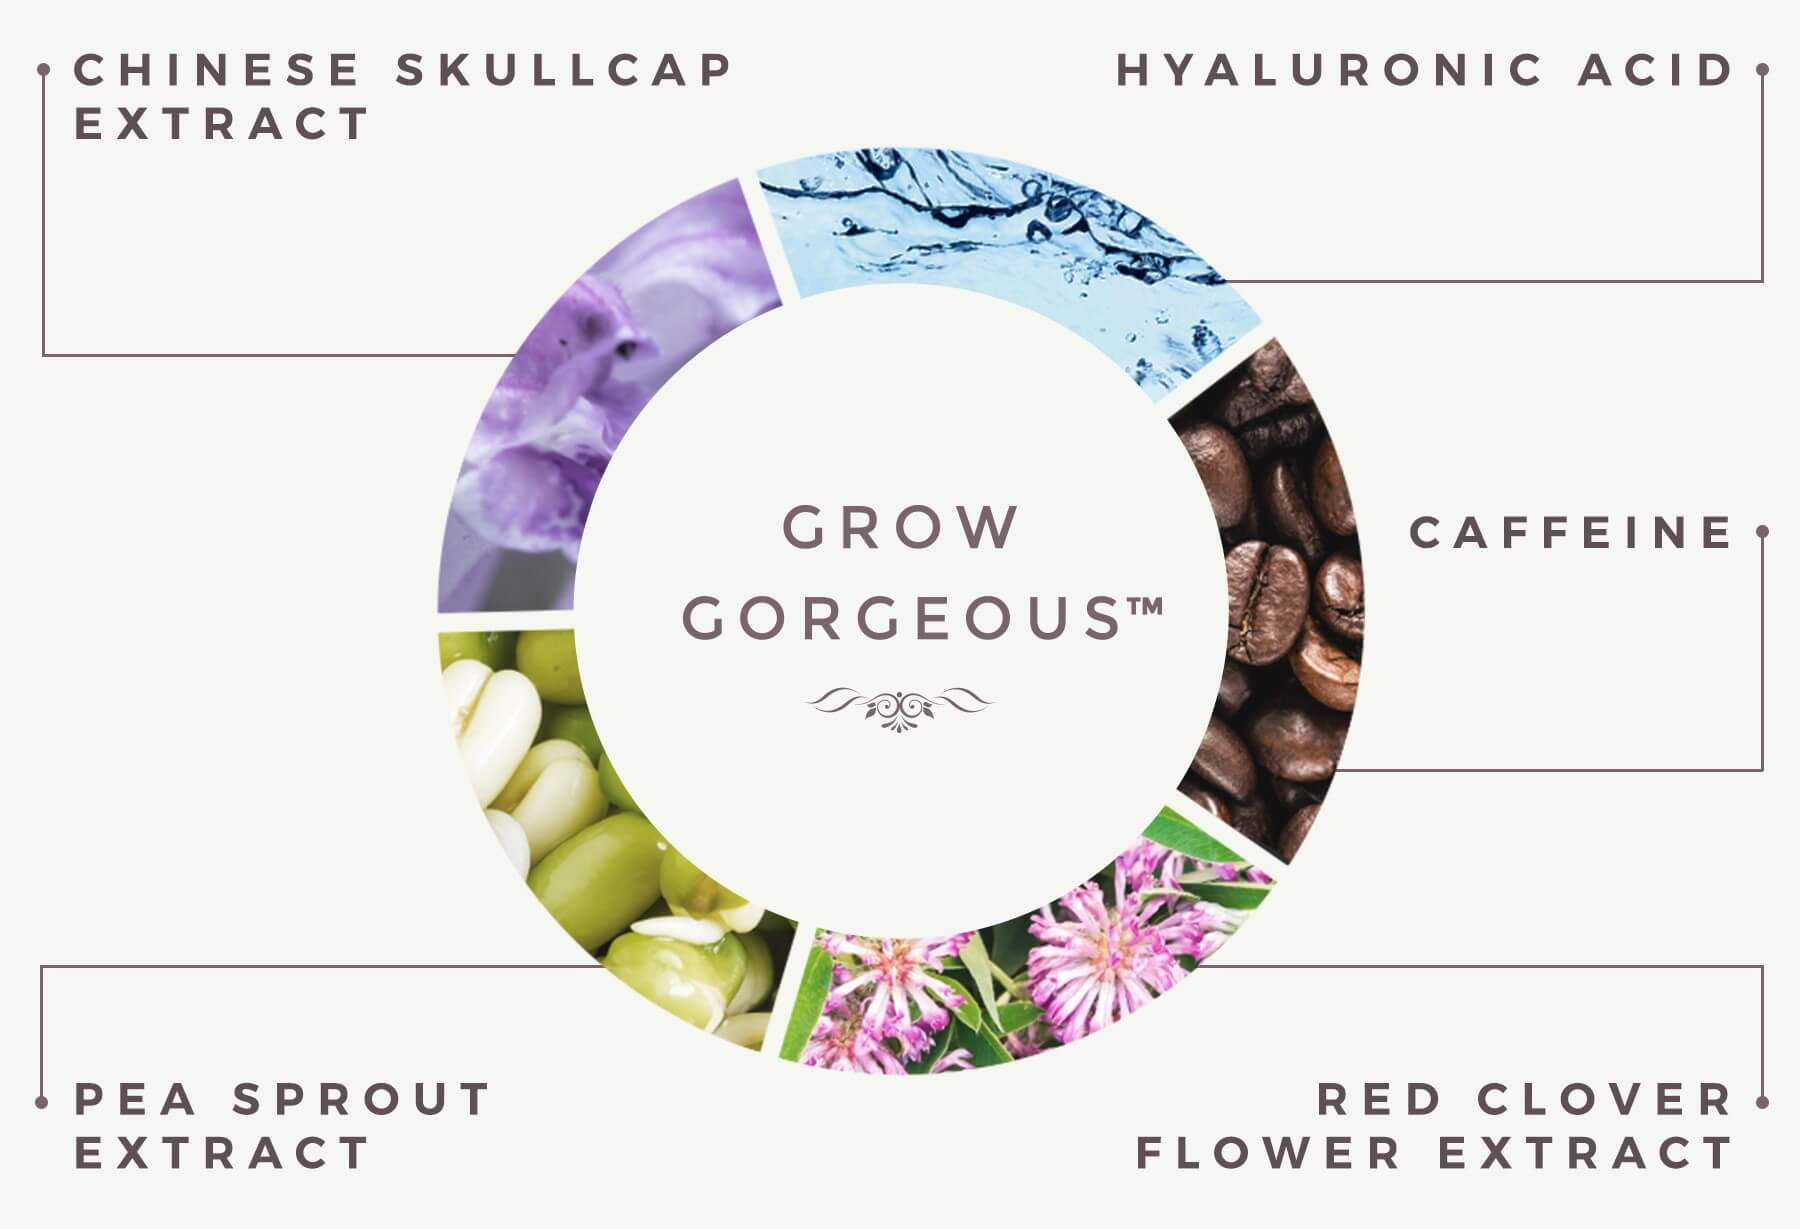 THE SCIENCE BEHIND THE SERUMS | OUR CORE INGREDIENTS